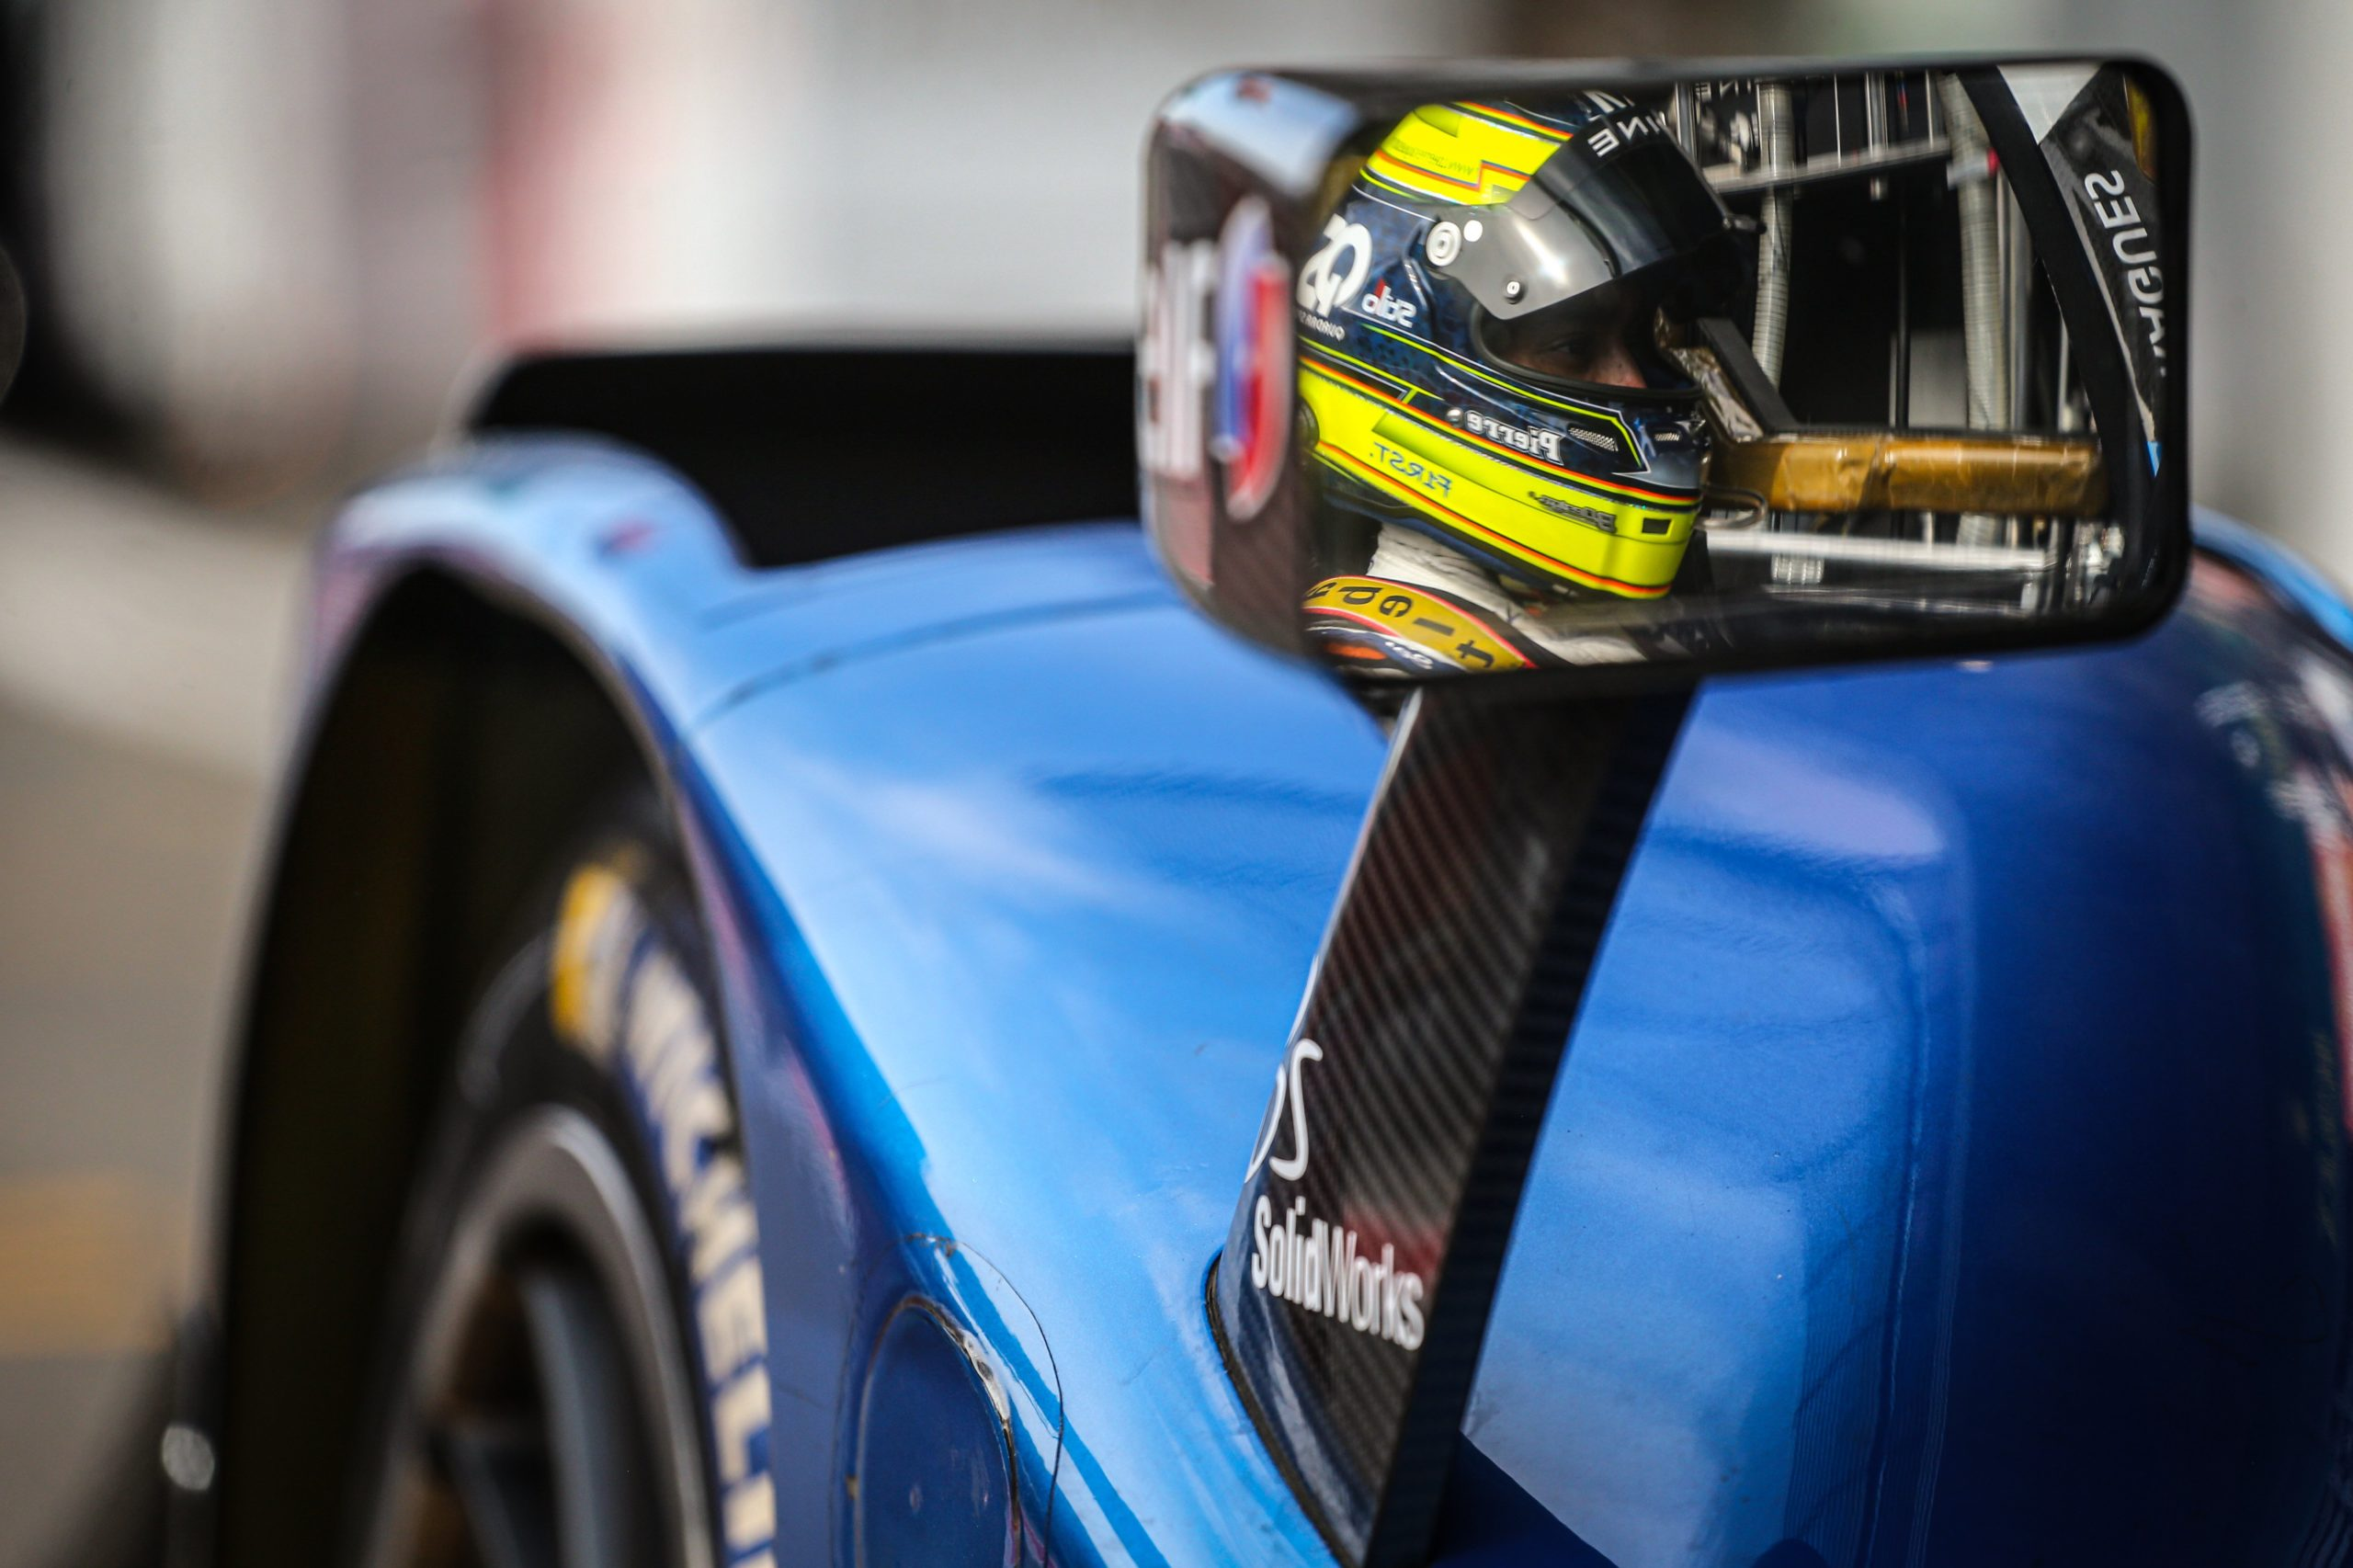 PIERRE RAGUES AND SIGNATECH ALPINE ELF PUT UP STRONG FIGHT BUT OUT OF LUCK IN SPA